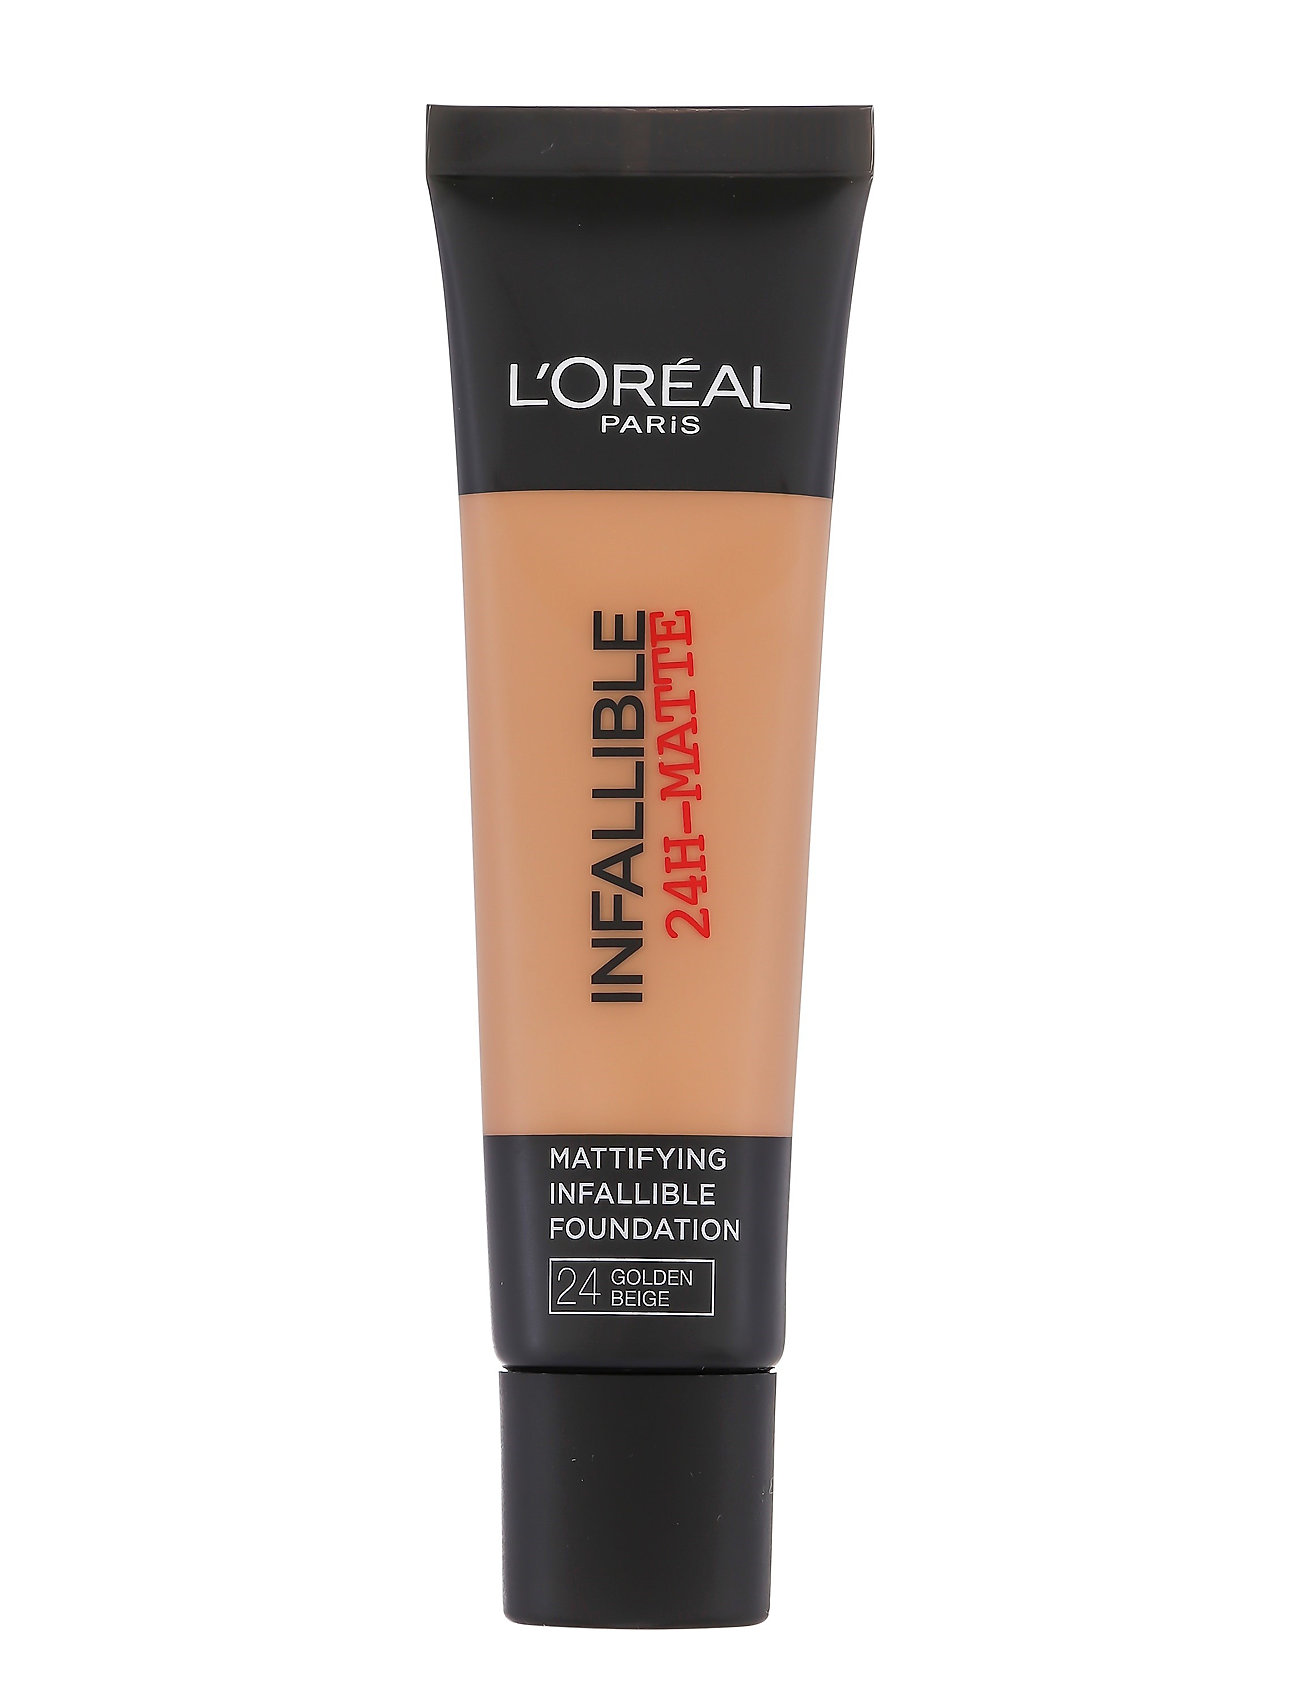 l'orã©al paris Infallible matte foundation på boozt.com dk